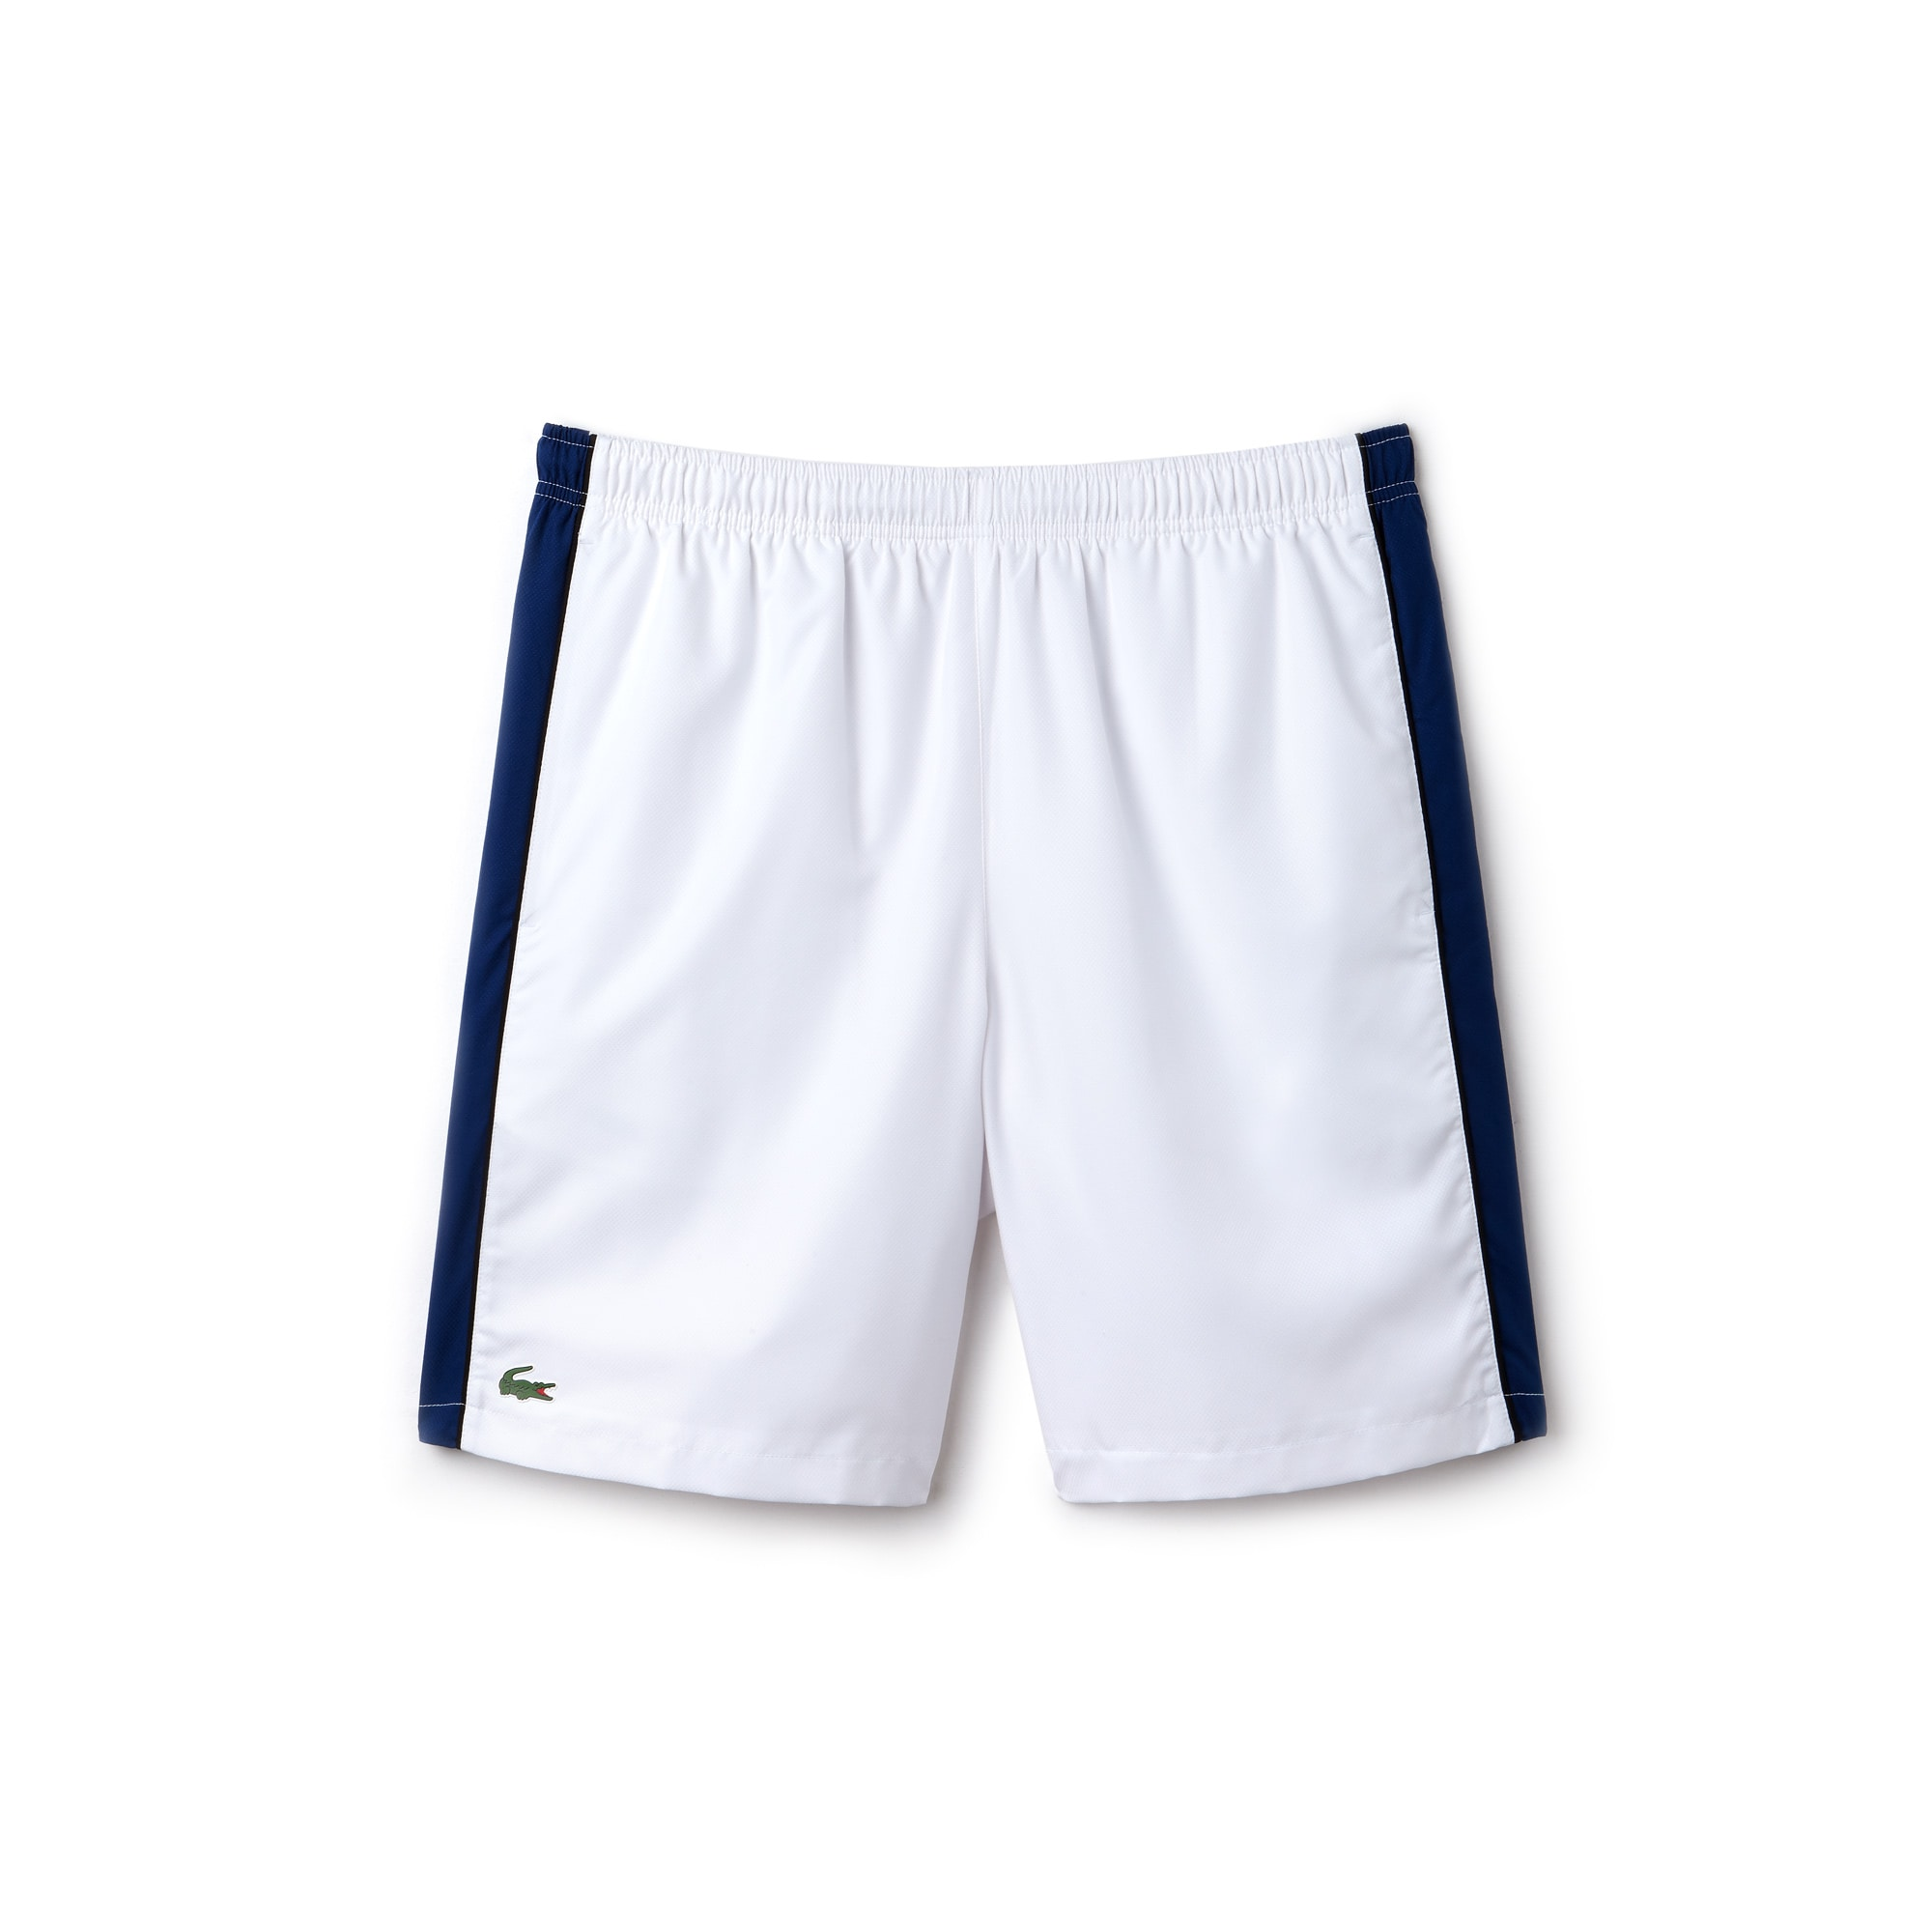 Men's SPORT Colorblock Shorts - Novak Djokovic Collection